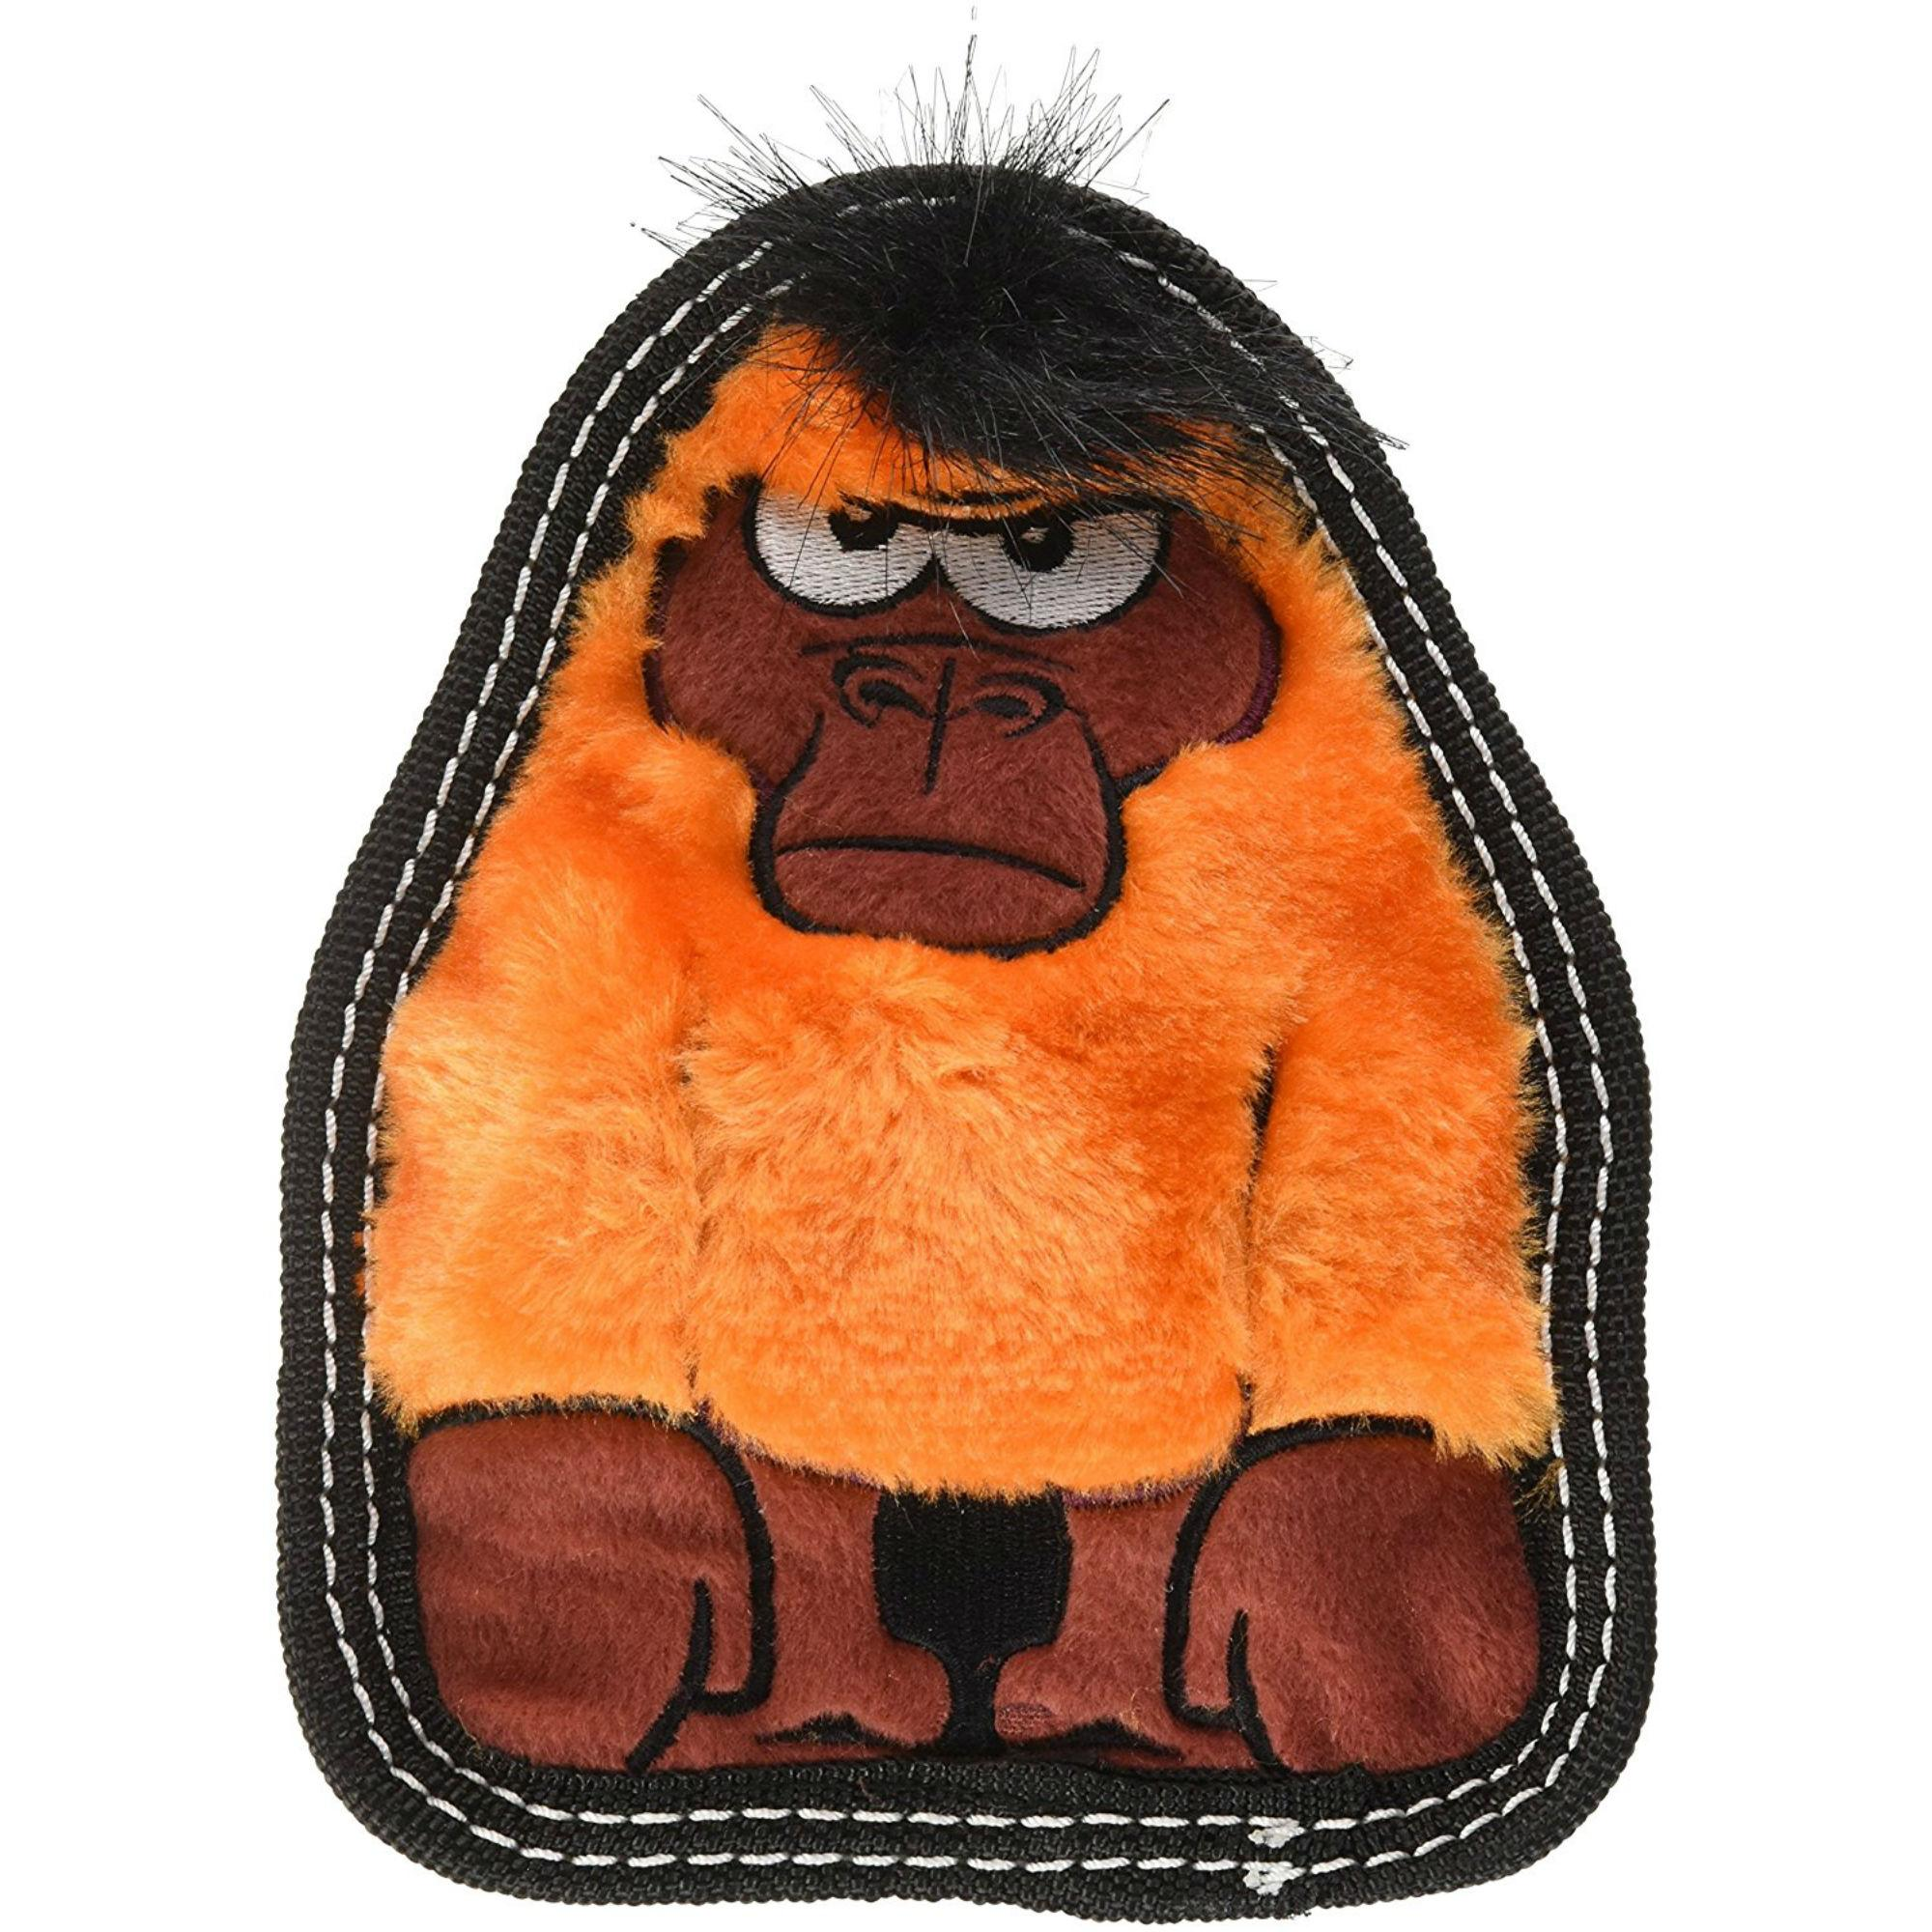 Invincibles Tough Seamz Dog Toy - Gorilla